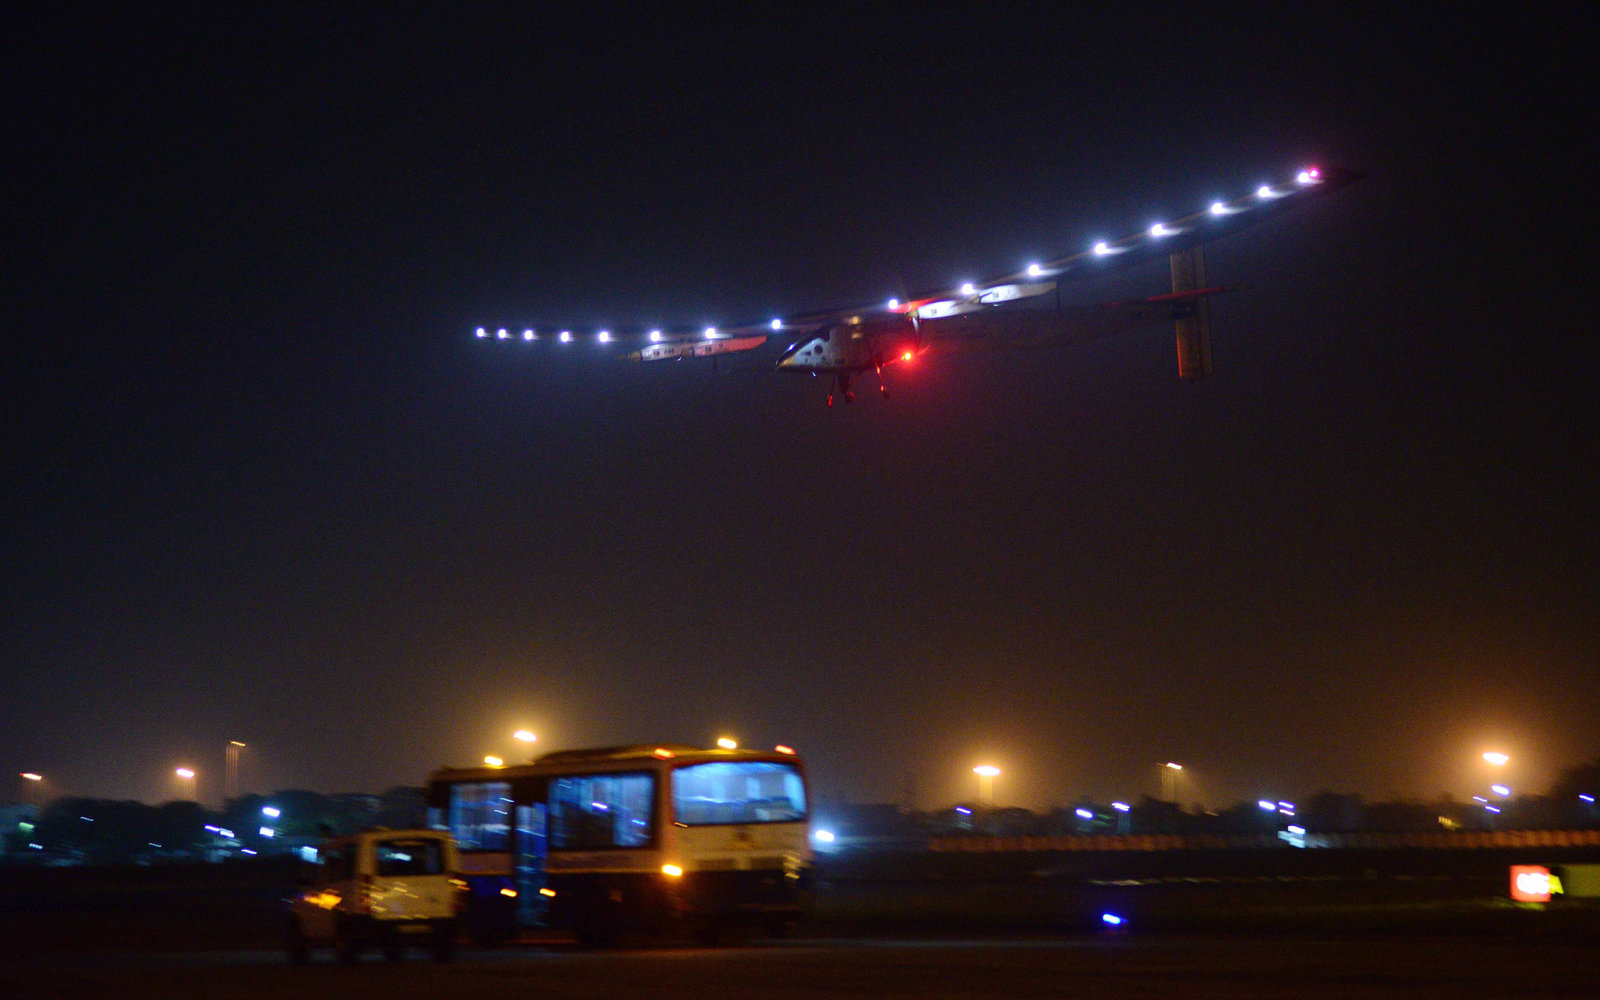 Solar Impulse Circumnavigates the World